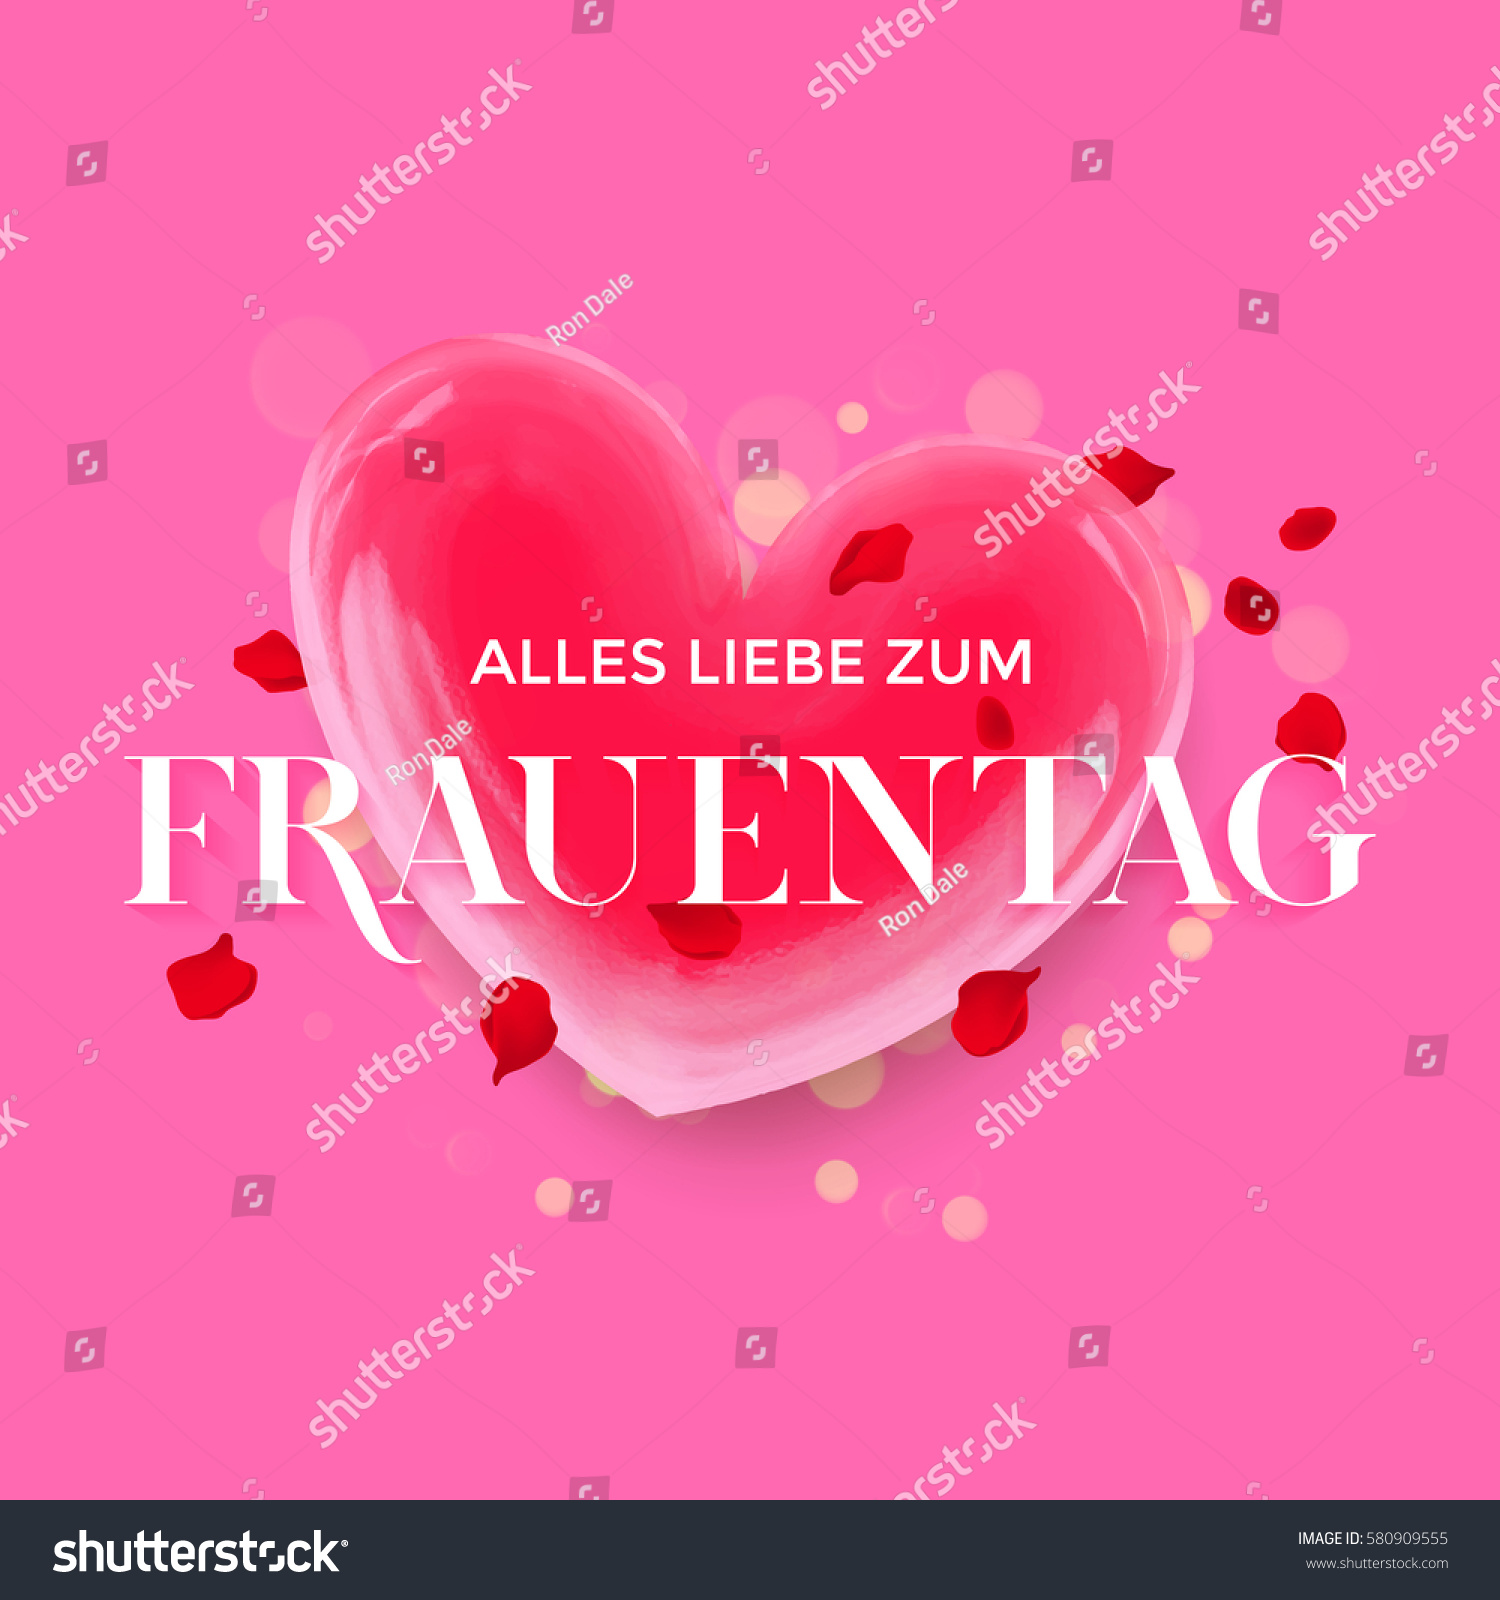 with love for women day text in german with 3d red heart with flying rose petals